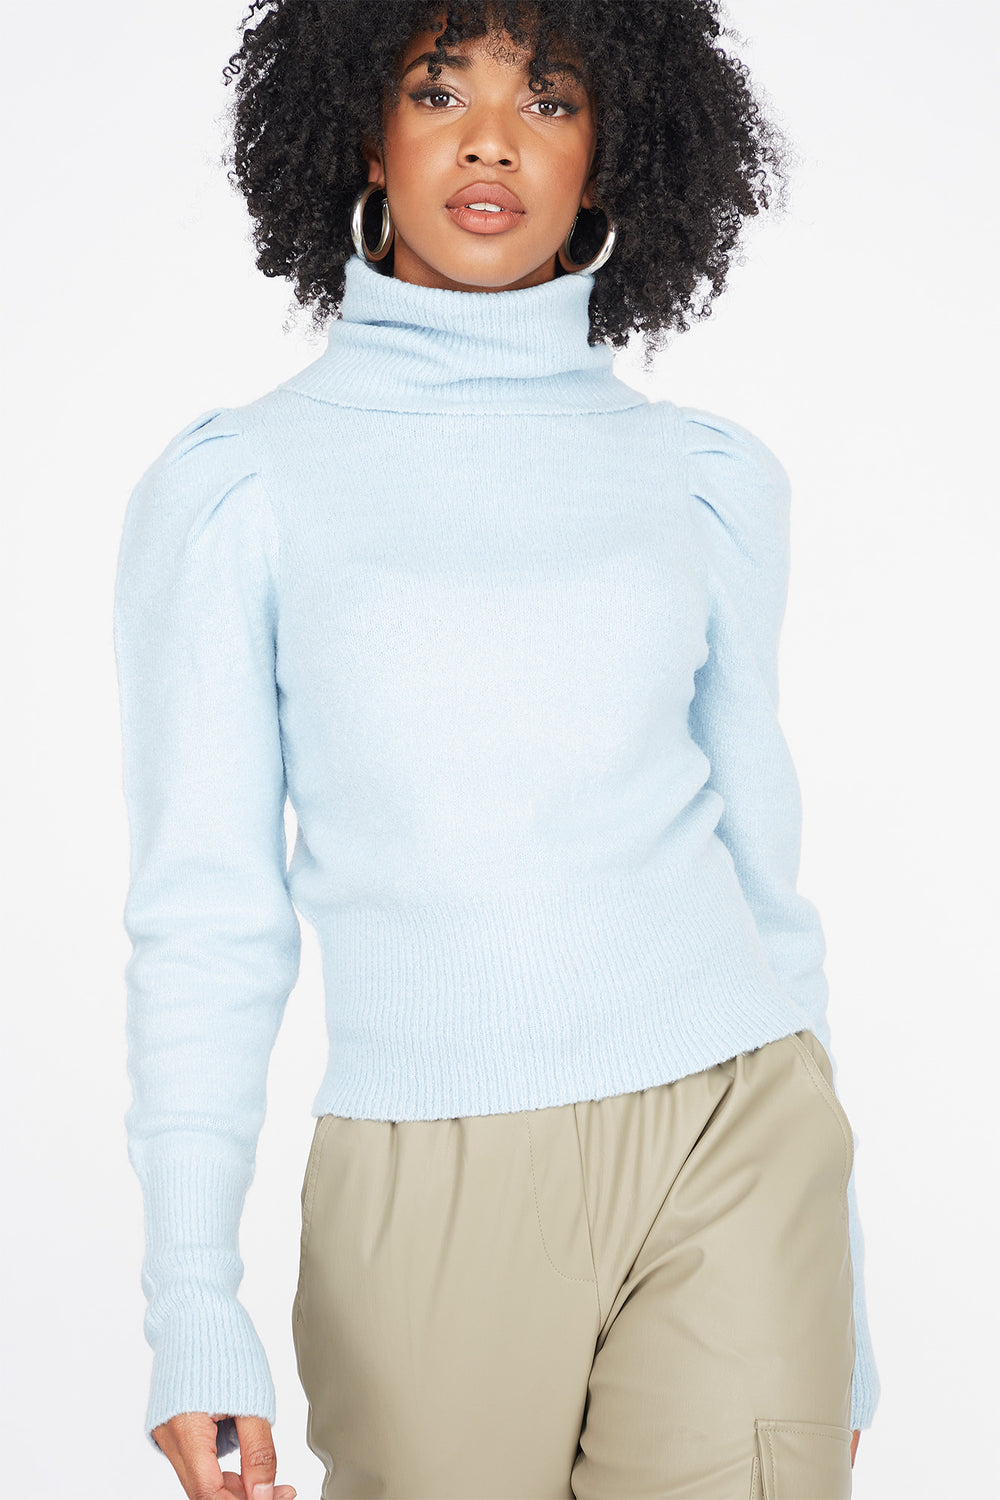 Comfortable and Soft Sweater Puff Sleeve Shirt Soft Blouse in Cotton and Viscose Jersey Turtleneck Puff Sleeves